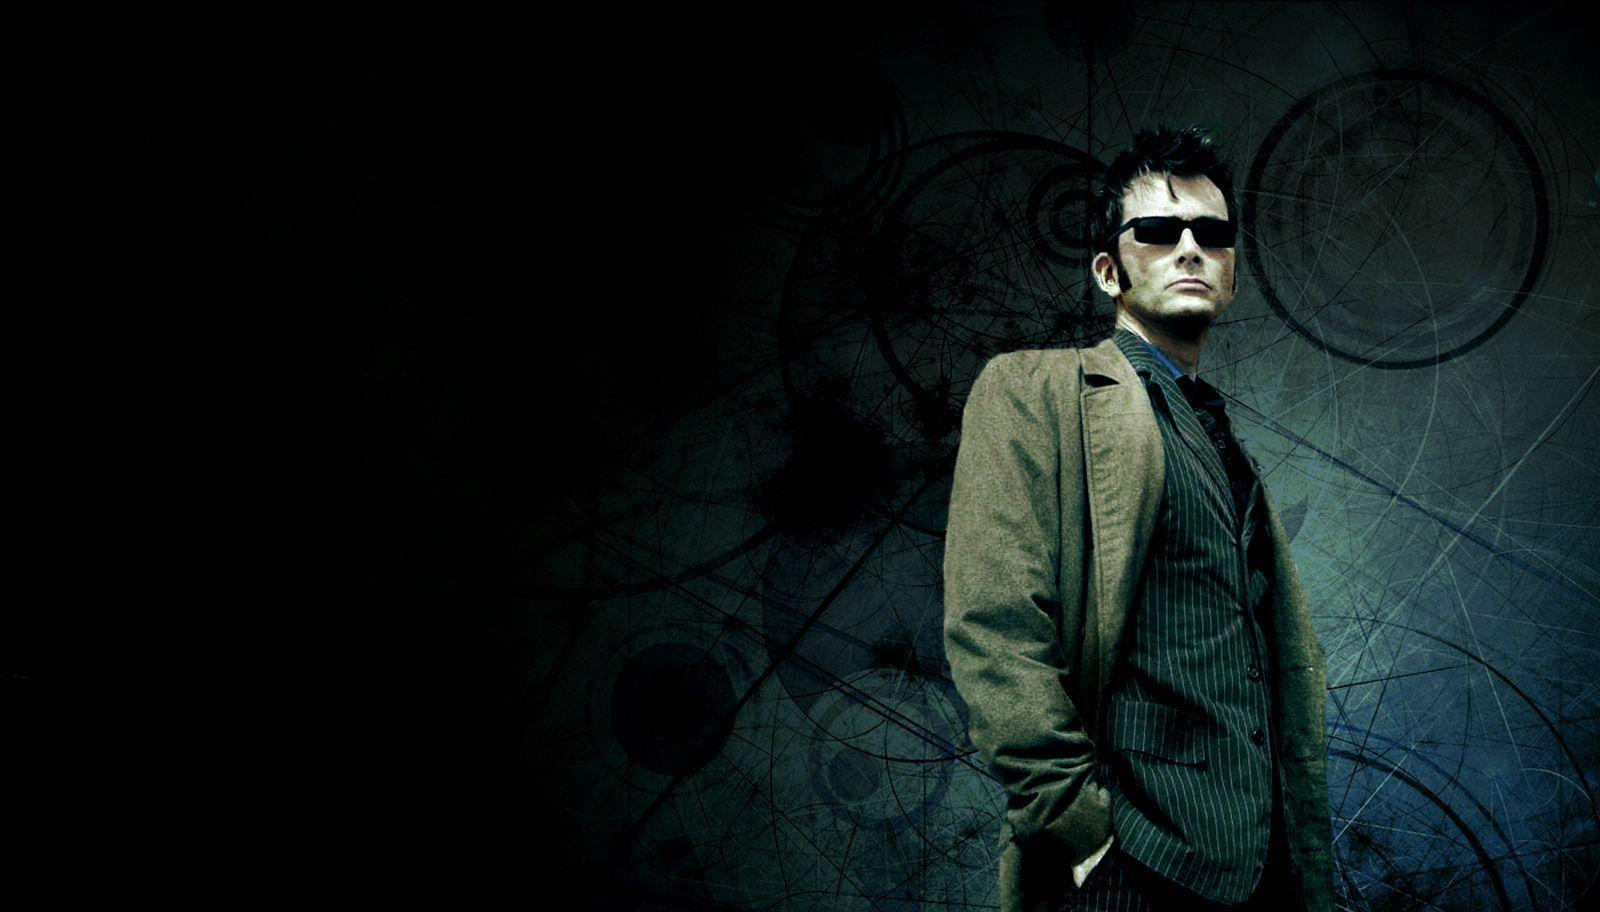 Wallpapers For > Doctor Who David Tennant Wallpapers Hd